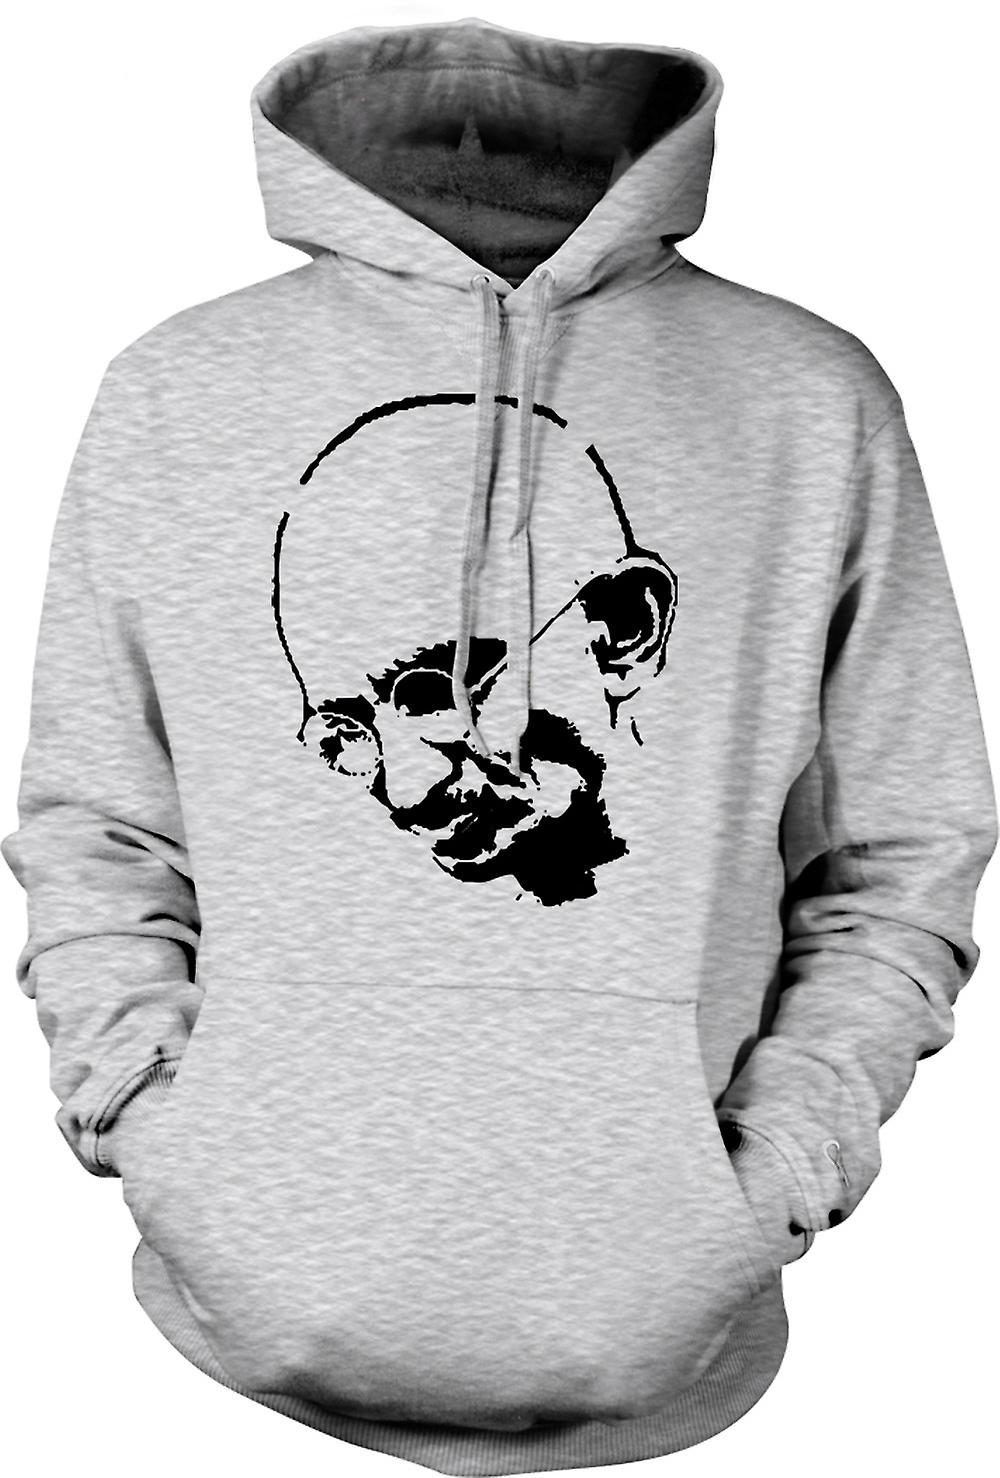 Mens-Hoodie - Ghandi - Indian - Hippie - Frieden